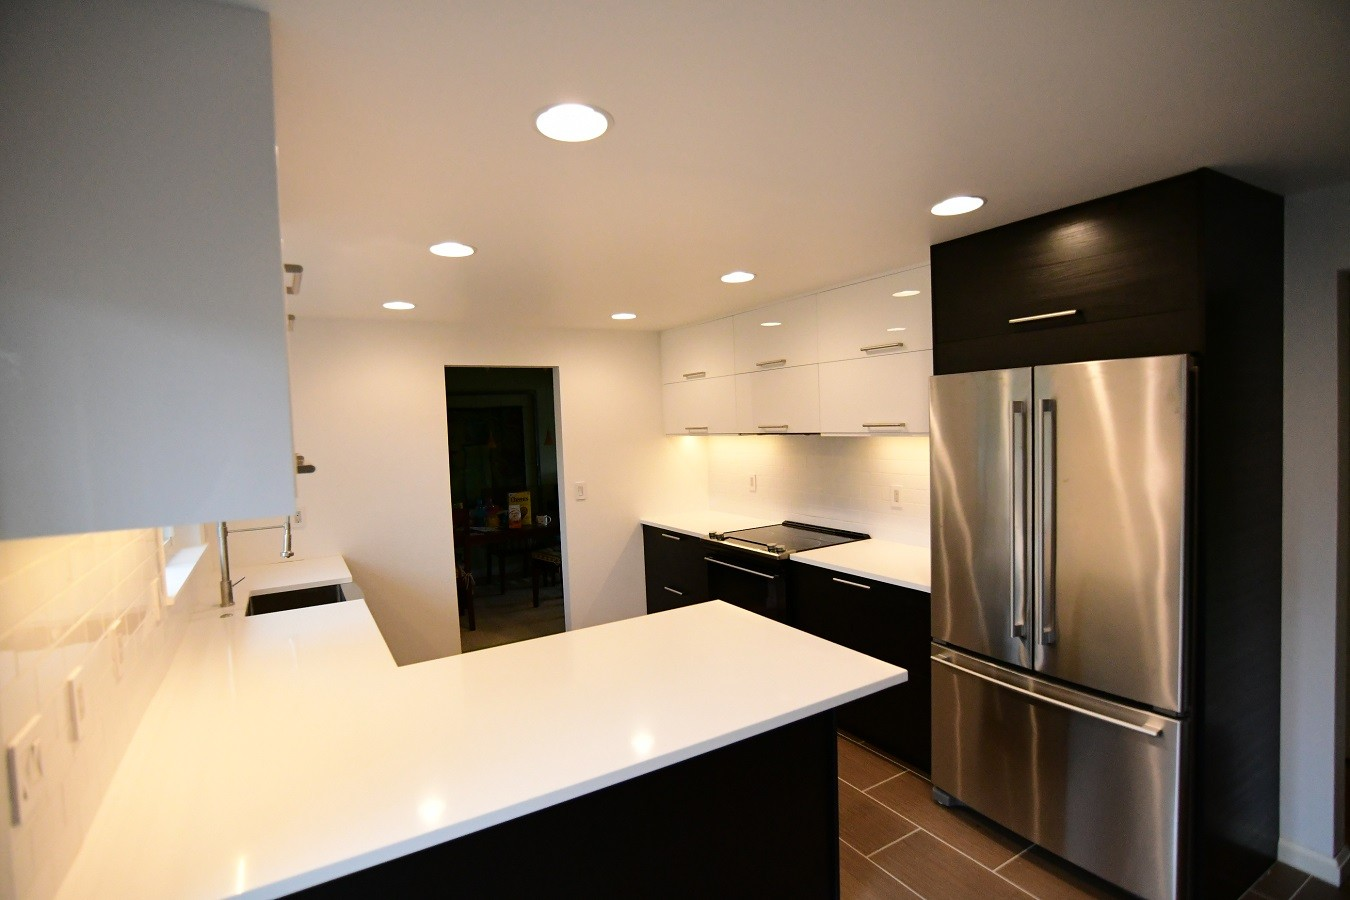 Portland remodeling project features black kitchen cabinets with white horizontal uppers